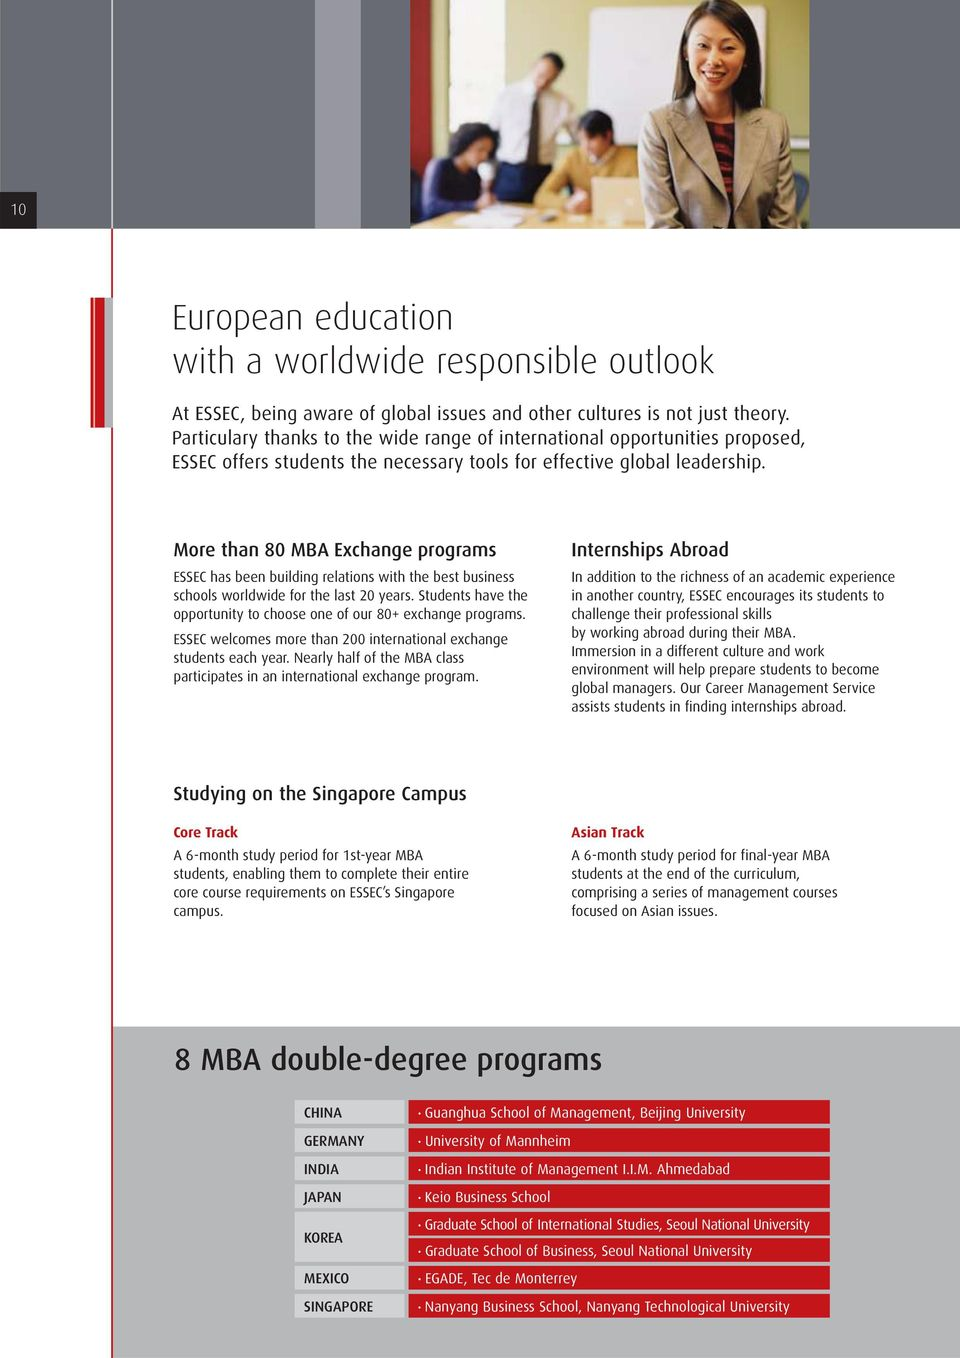 More than 80 MBA Exchange programs ESSEC has been building relations with the best business schools worldwide for the last 20 years.